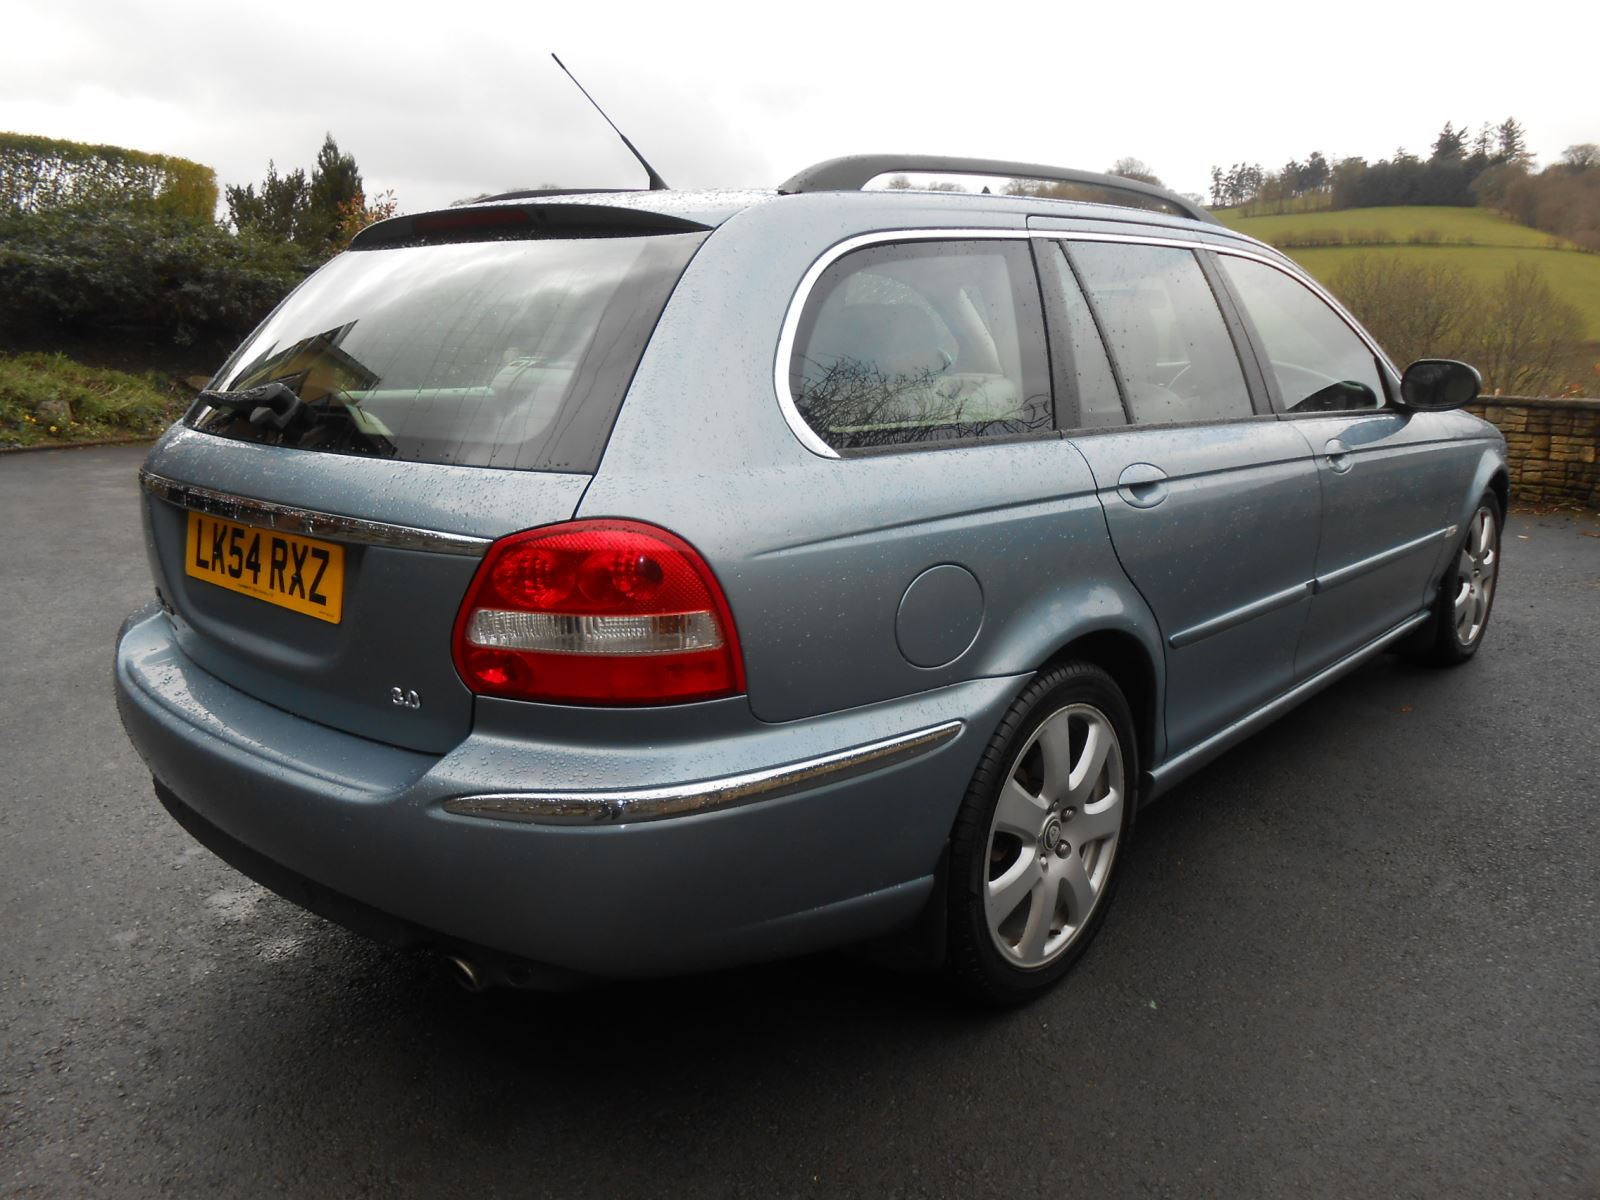 jaguar x type 3 0 v6 se estate awd car for sale llanidloes powys mid wales kevin jones cars. Black Bedroom Furniture Sets. Home Design Ideas